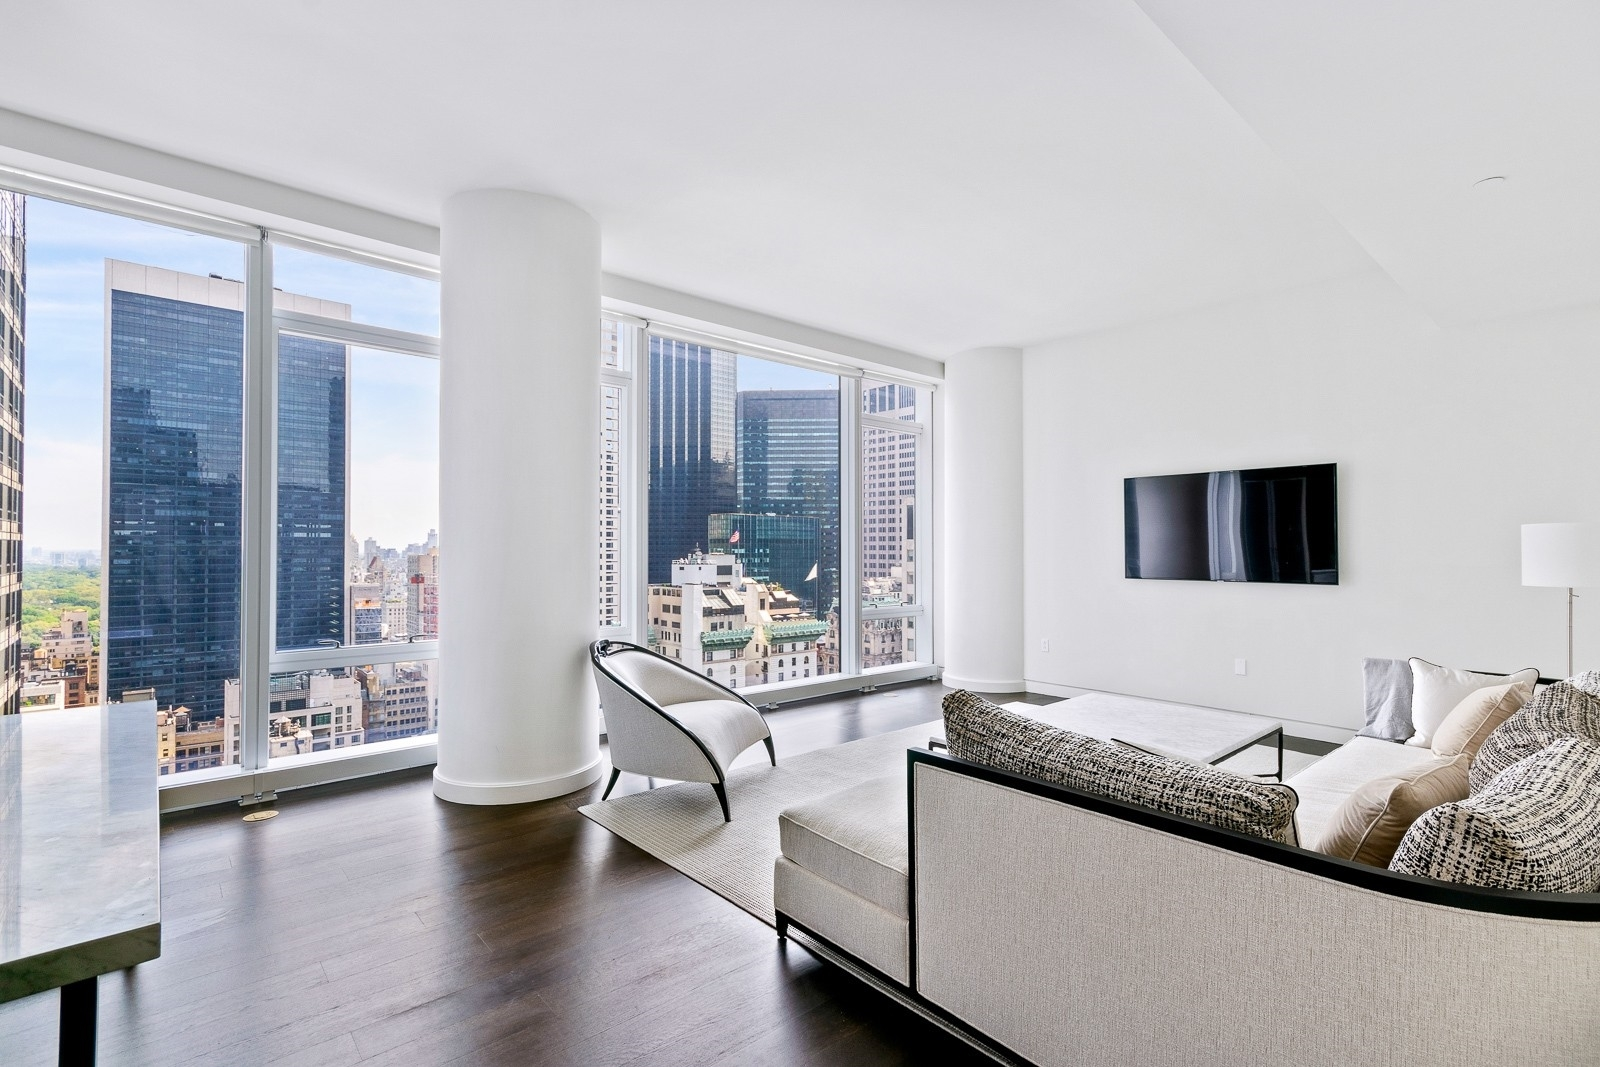 Property at BACCARAT HOTEL & RESIDENCES, 20 West 53rd St, 29B Midtown West, New York, NY 10019